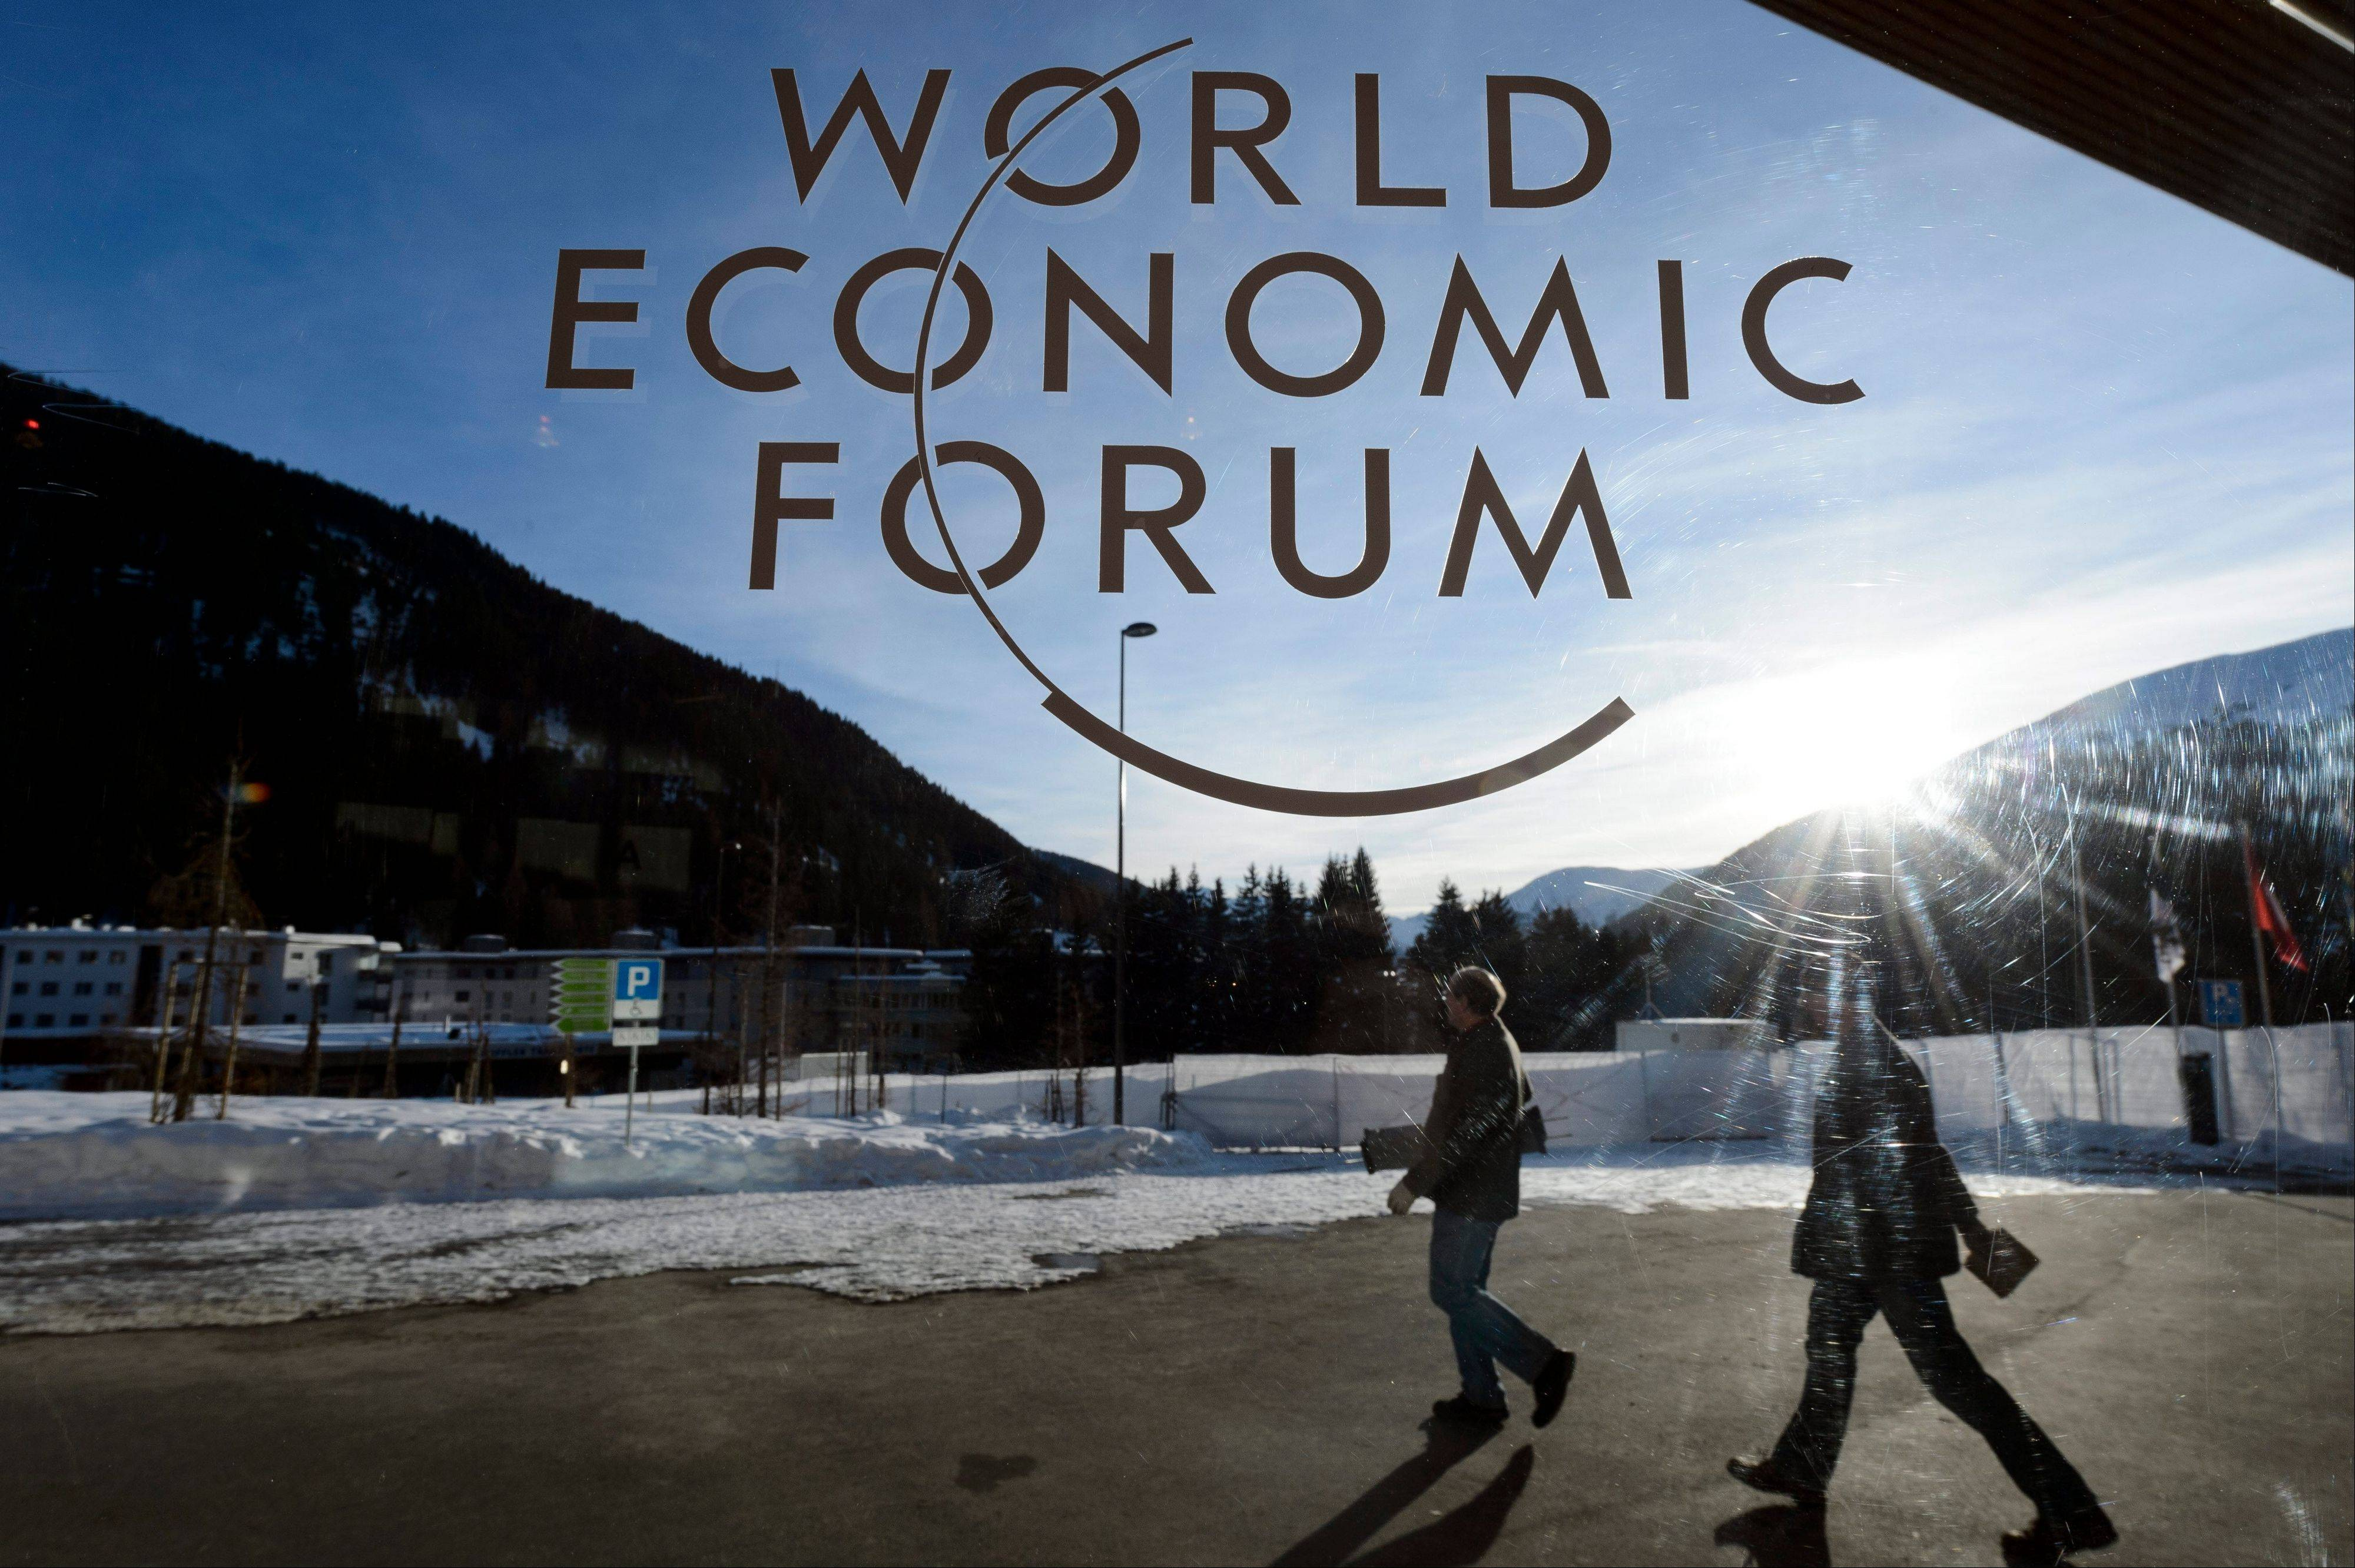 Participants leave the Congress Center the last day of the 43rd Annual Meeting of the World Economic Forum in Davos, Switzerland, Saturday.